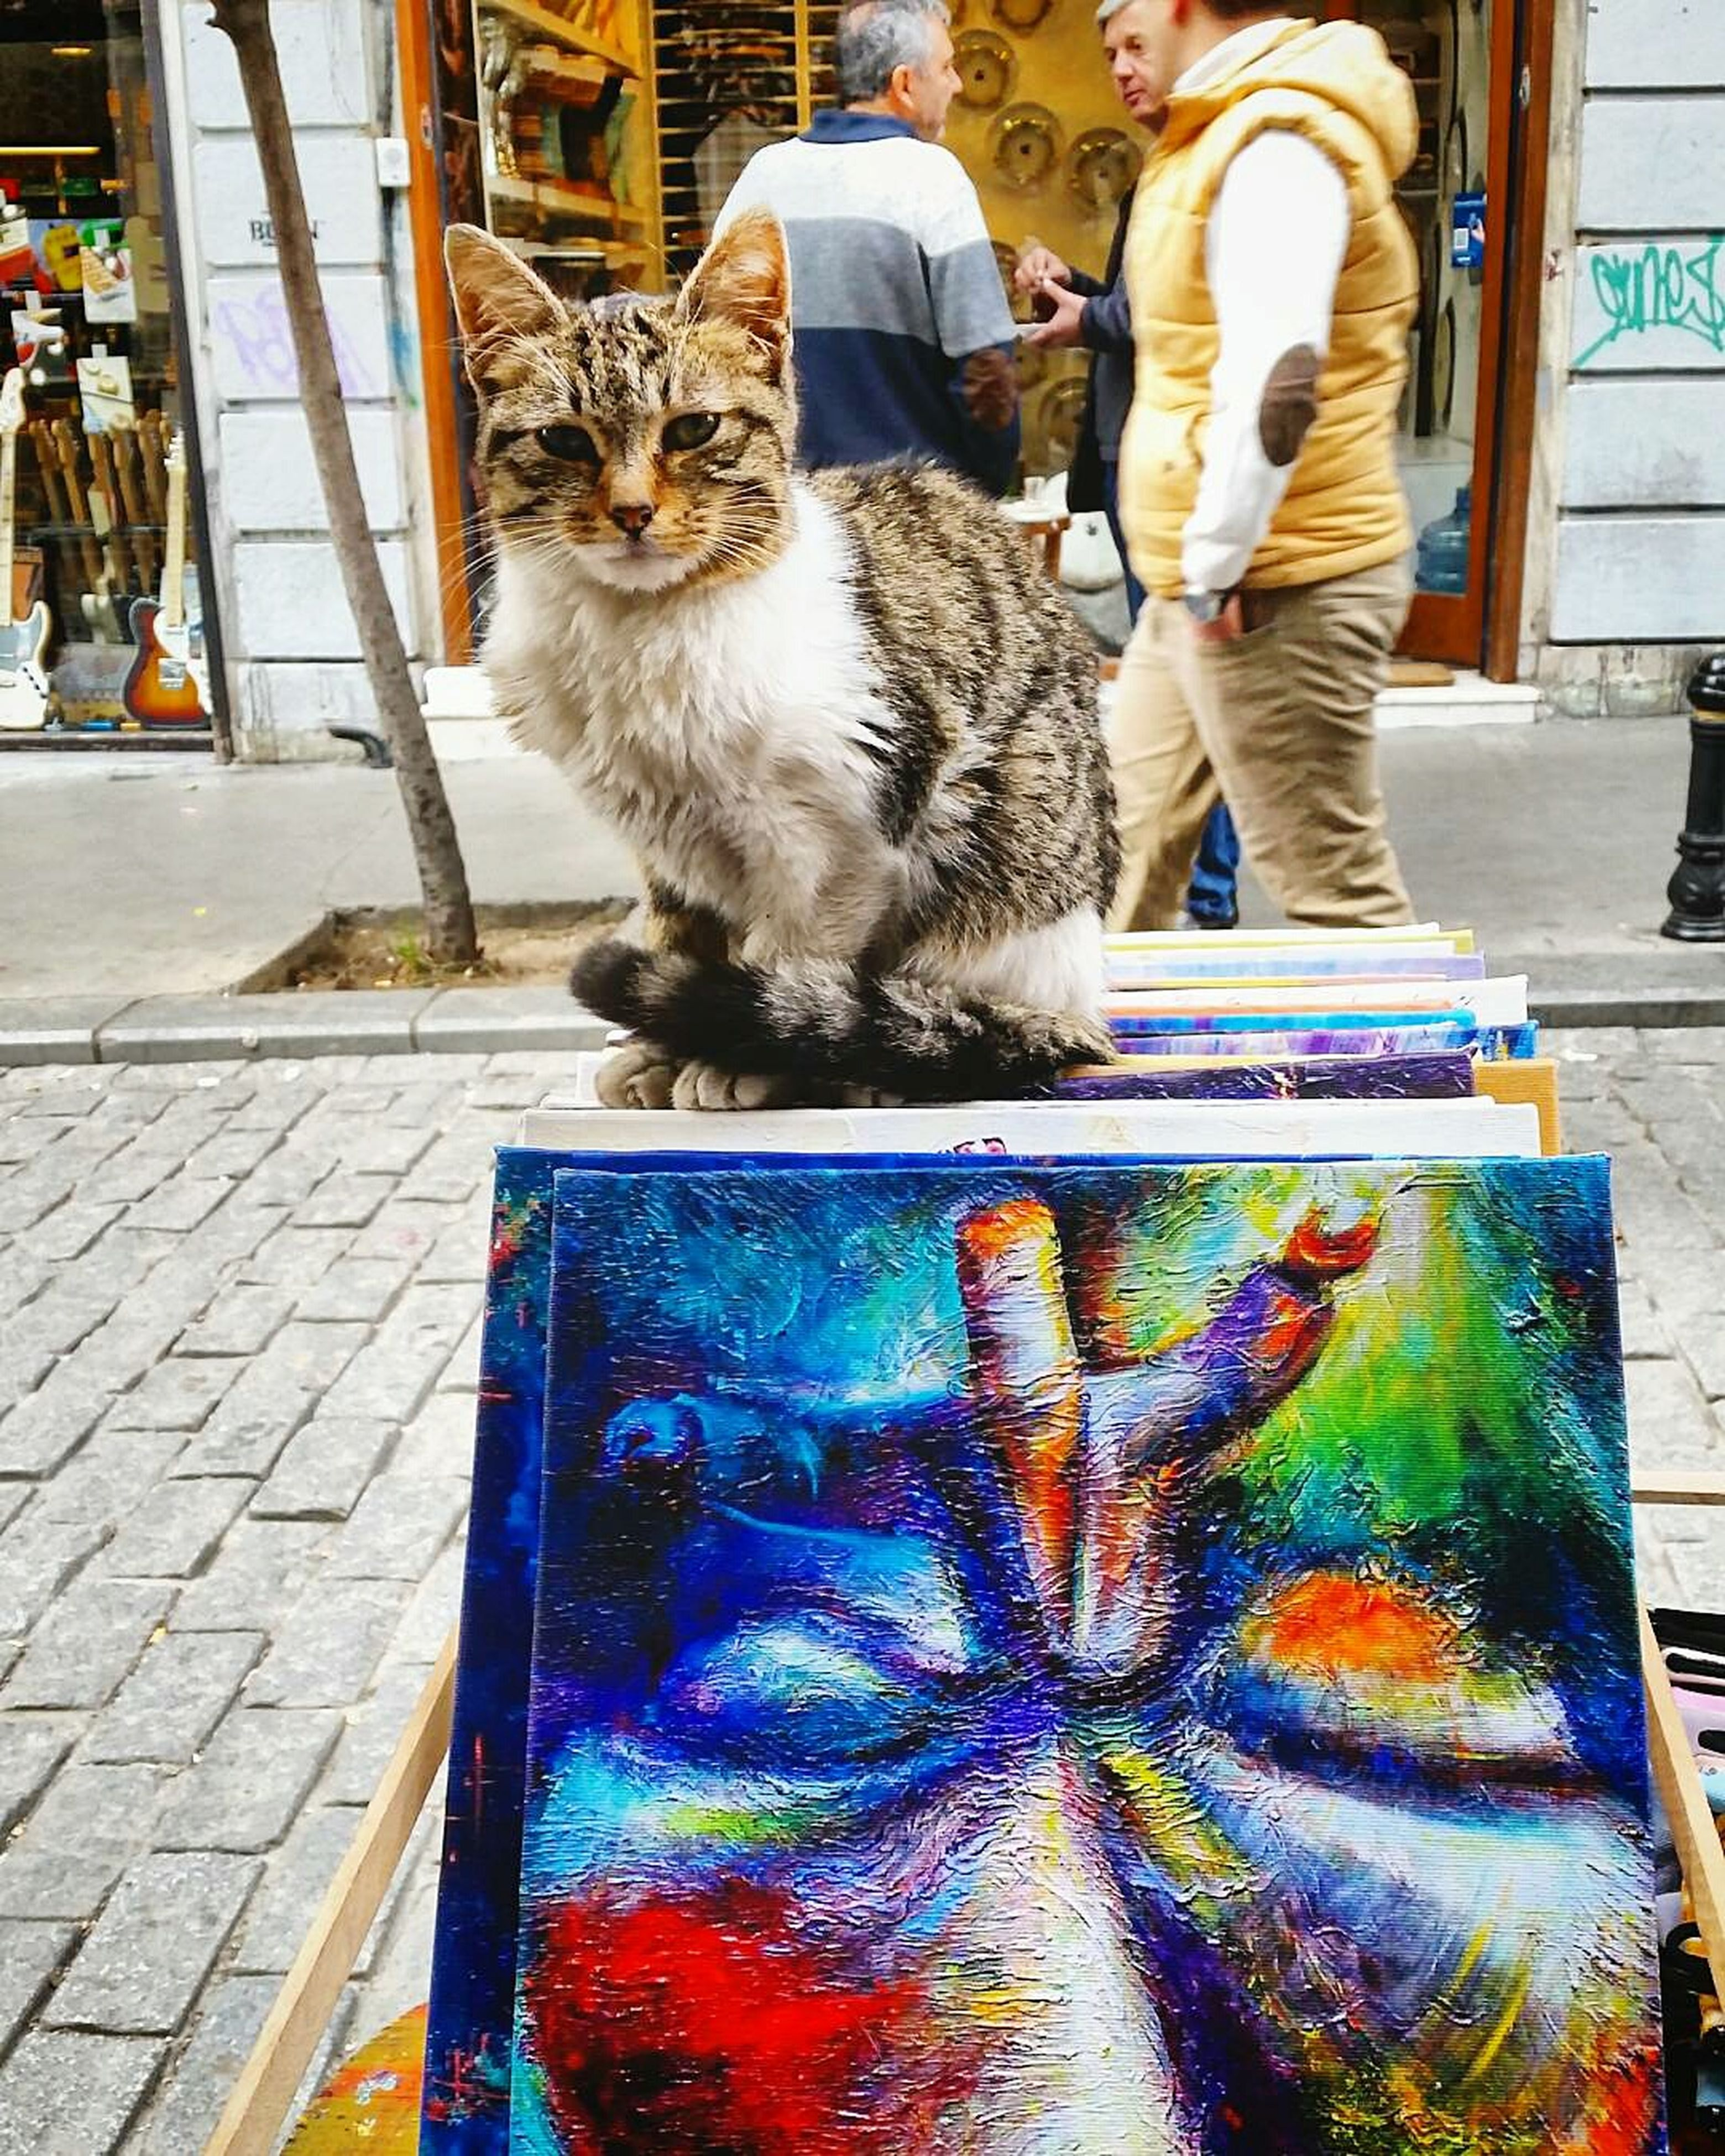 pets, mammal, domestic animals, domestic cat, animal themes, one animal, one person, feline, day, outdoors, adult, people, adults only